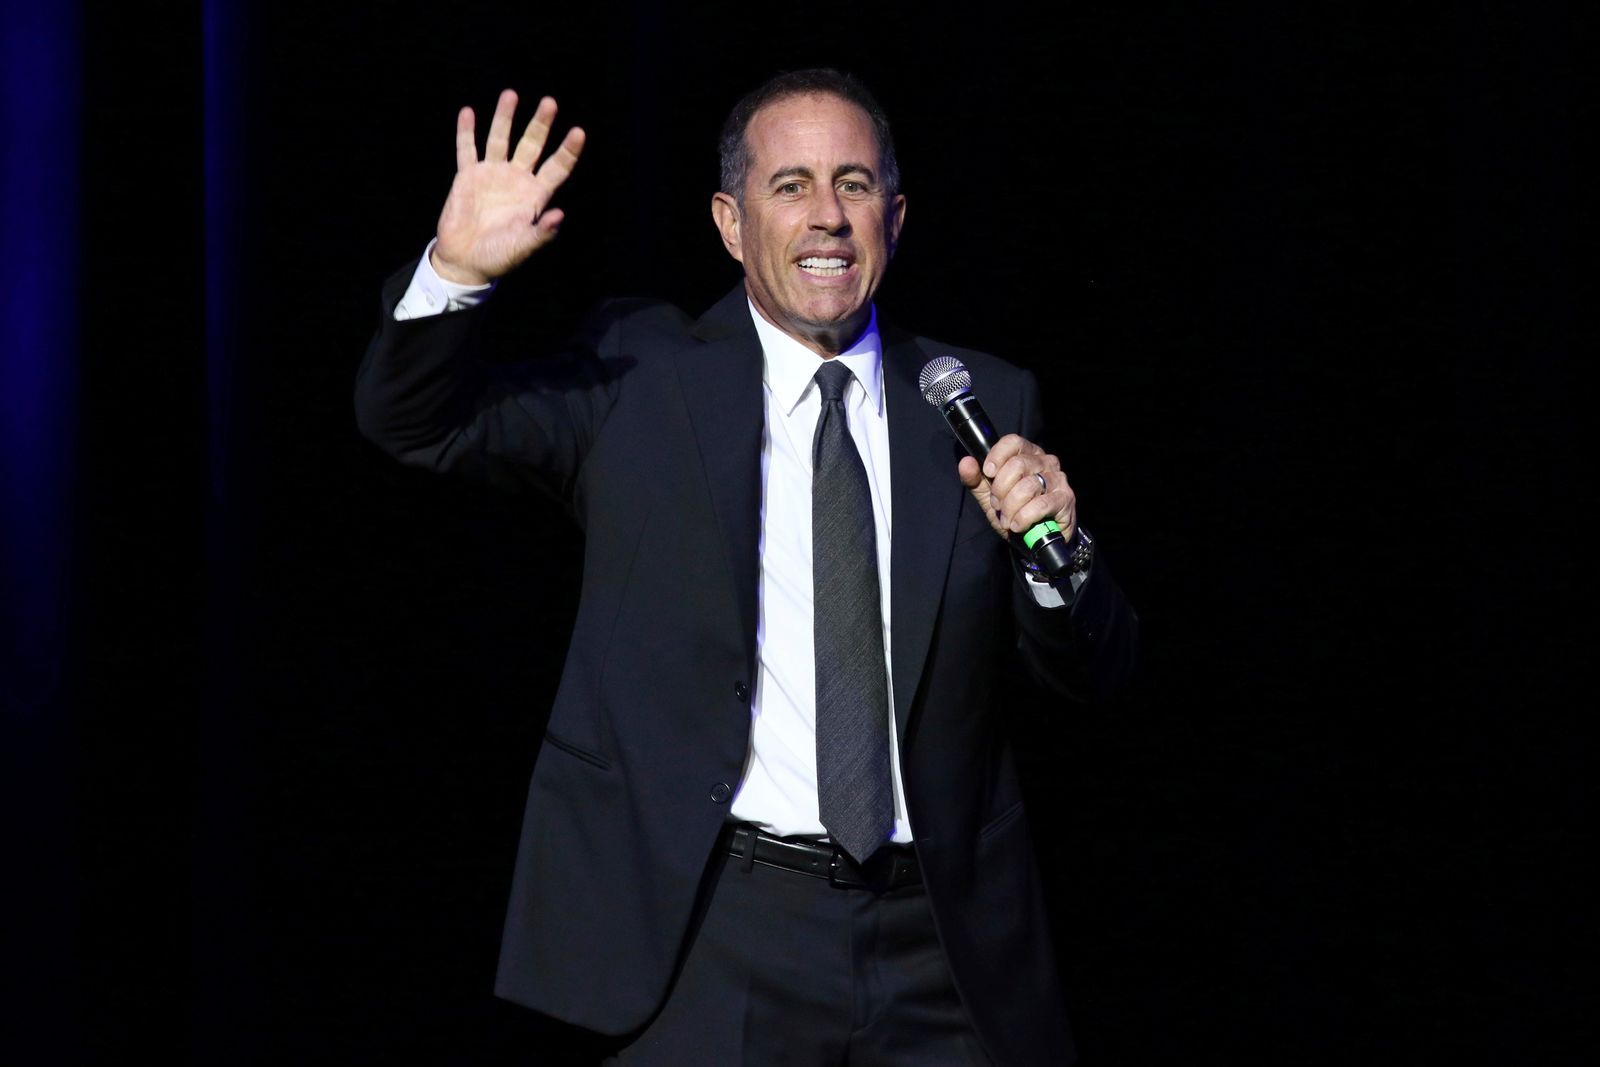 FILE - In this Nov. 1, 2016 file photo, Jerry Seinfeld performs at Stand Up For Heroes, presented by the New York Comedy Festival and the Bob Woodruff Foundation, at The Theater at Madison Square Garden in New York. (Photo by Greg Allen/Invision/AP, File)